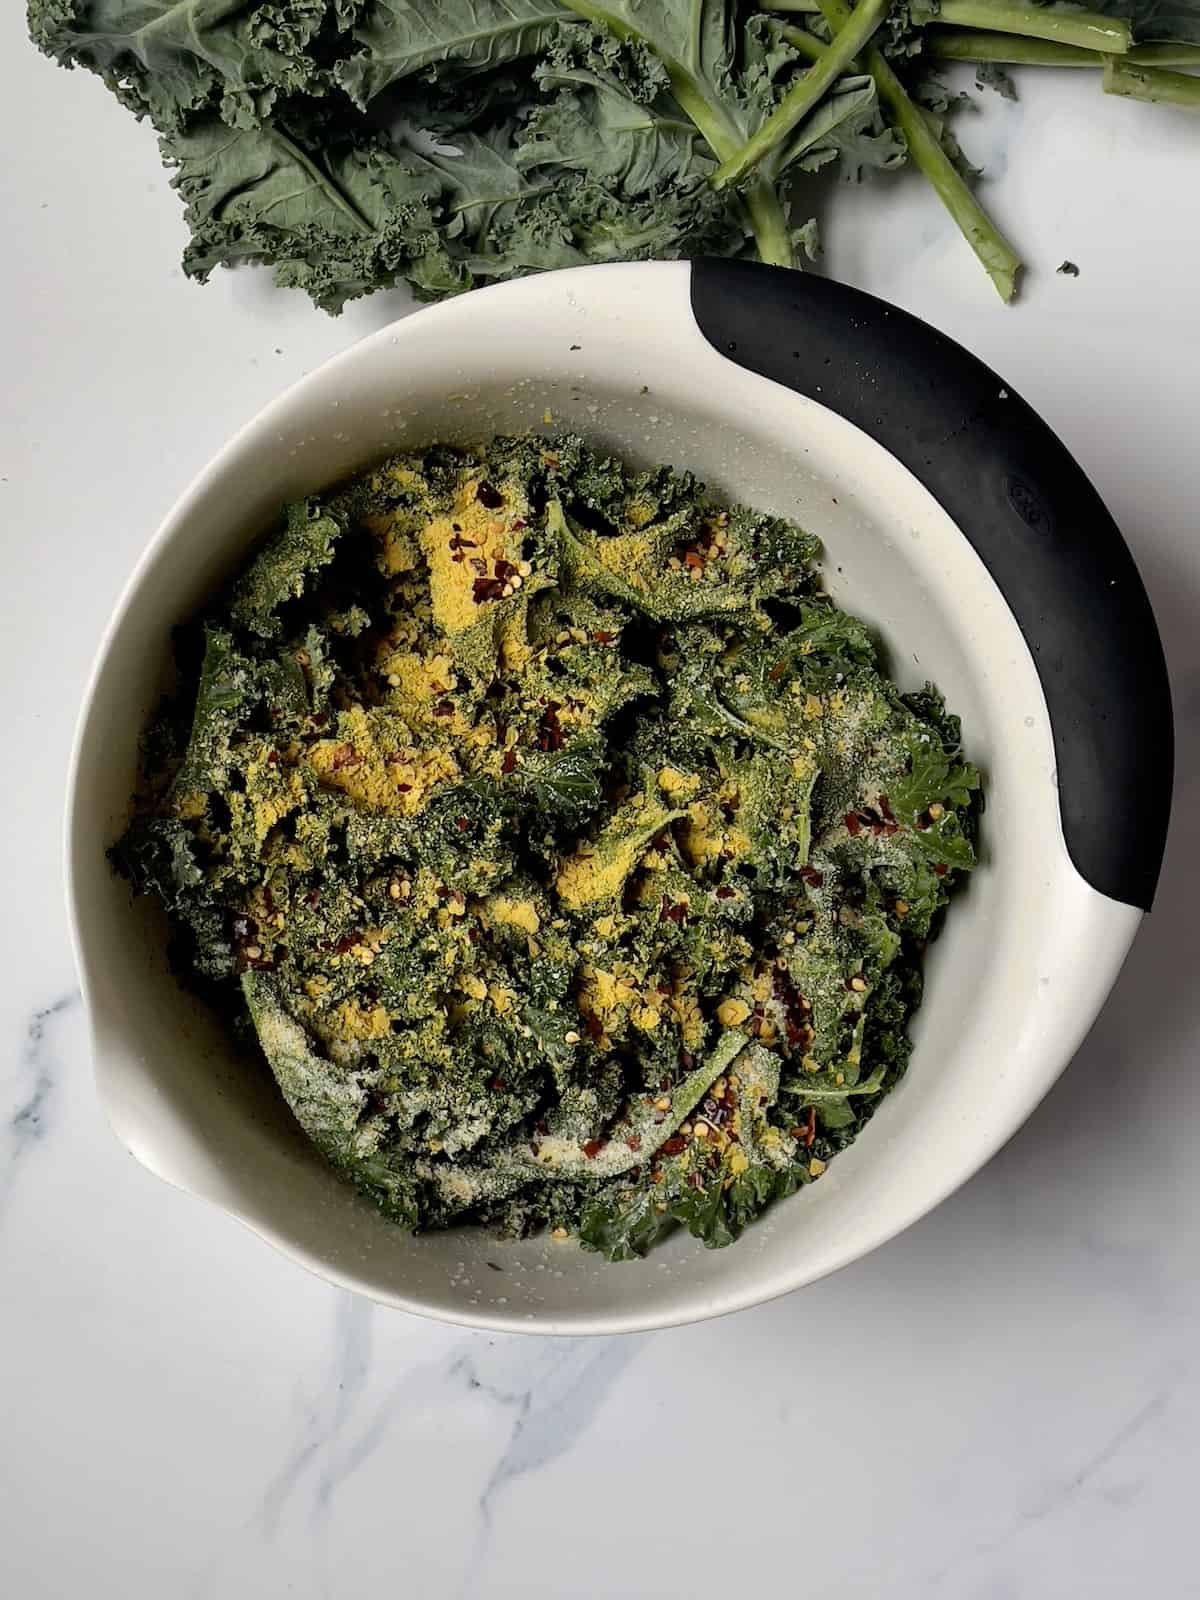 kale and seasonings in a white mixing bowl